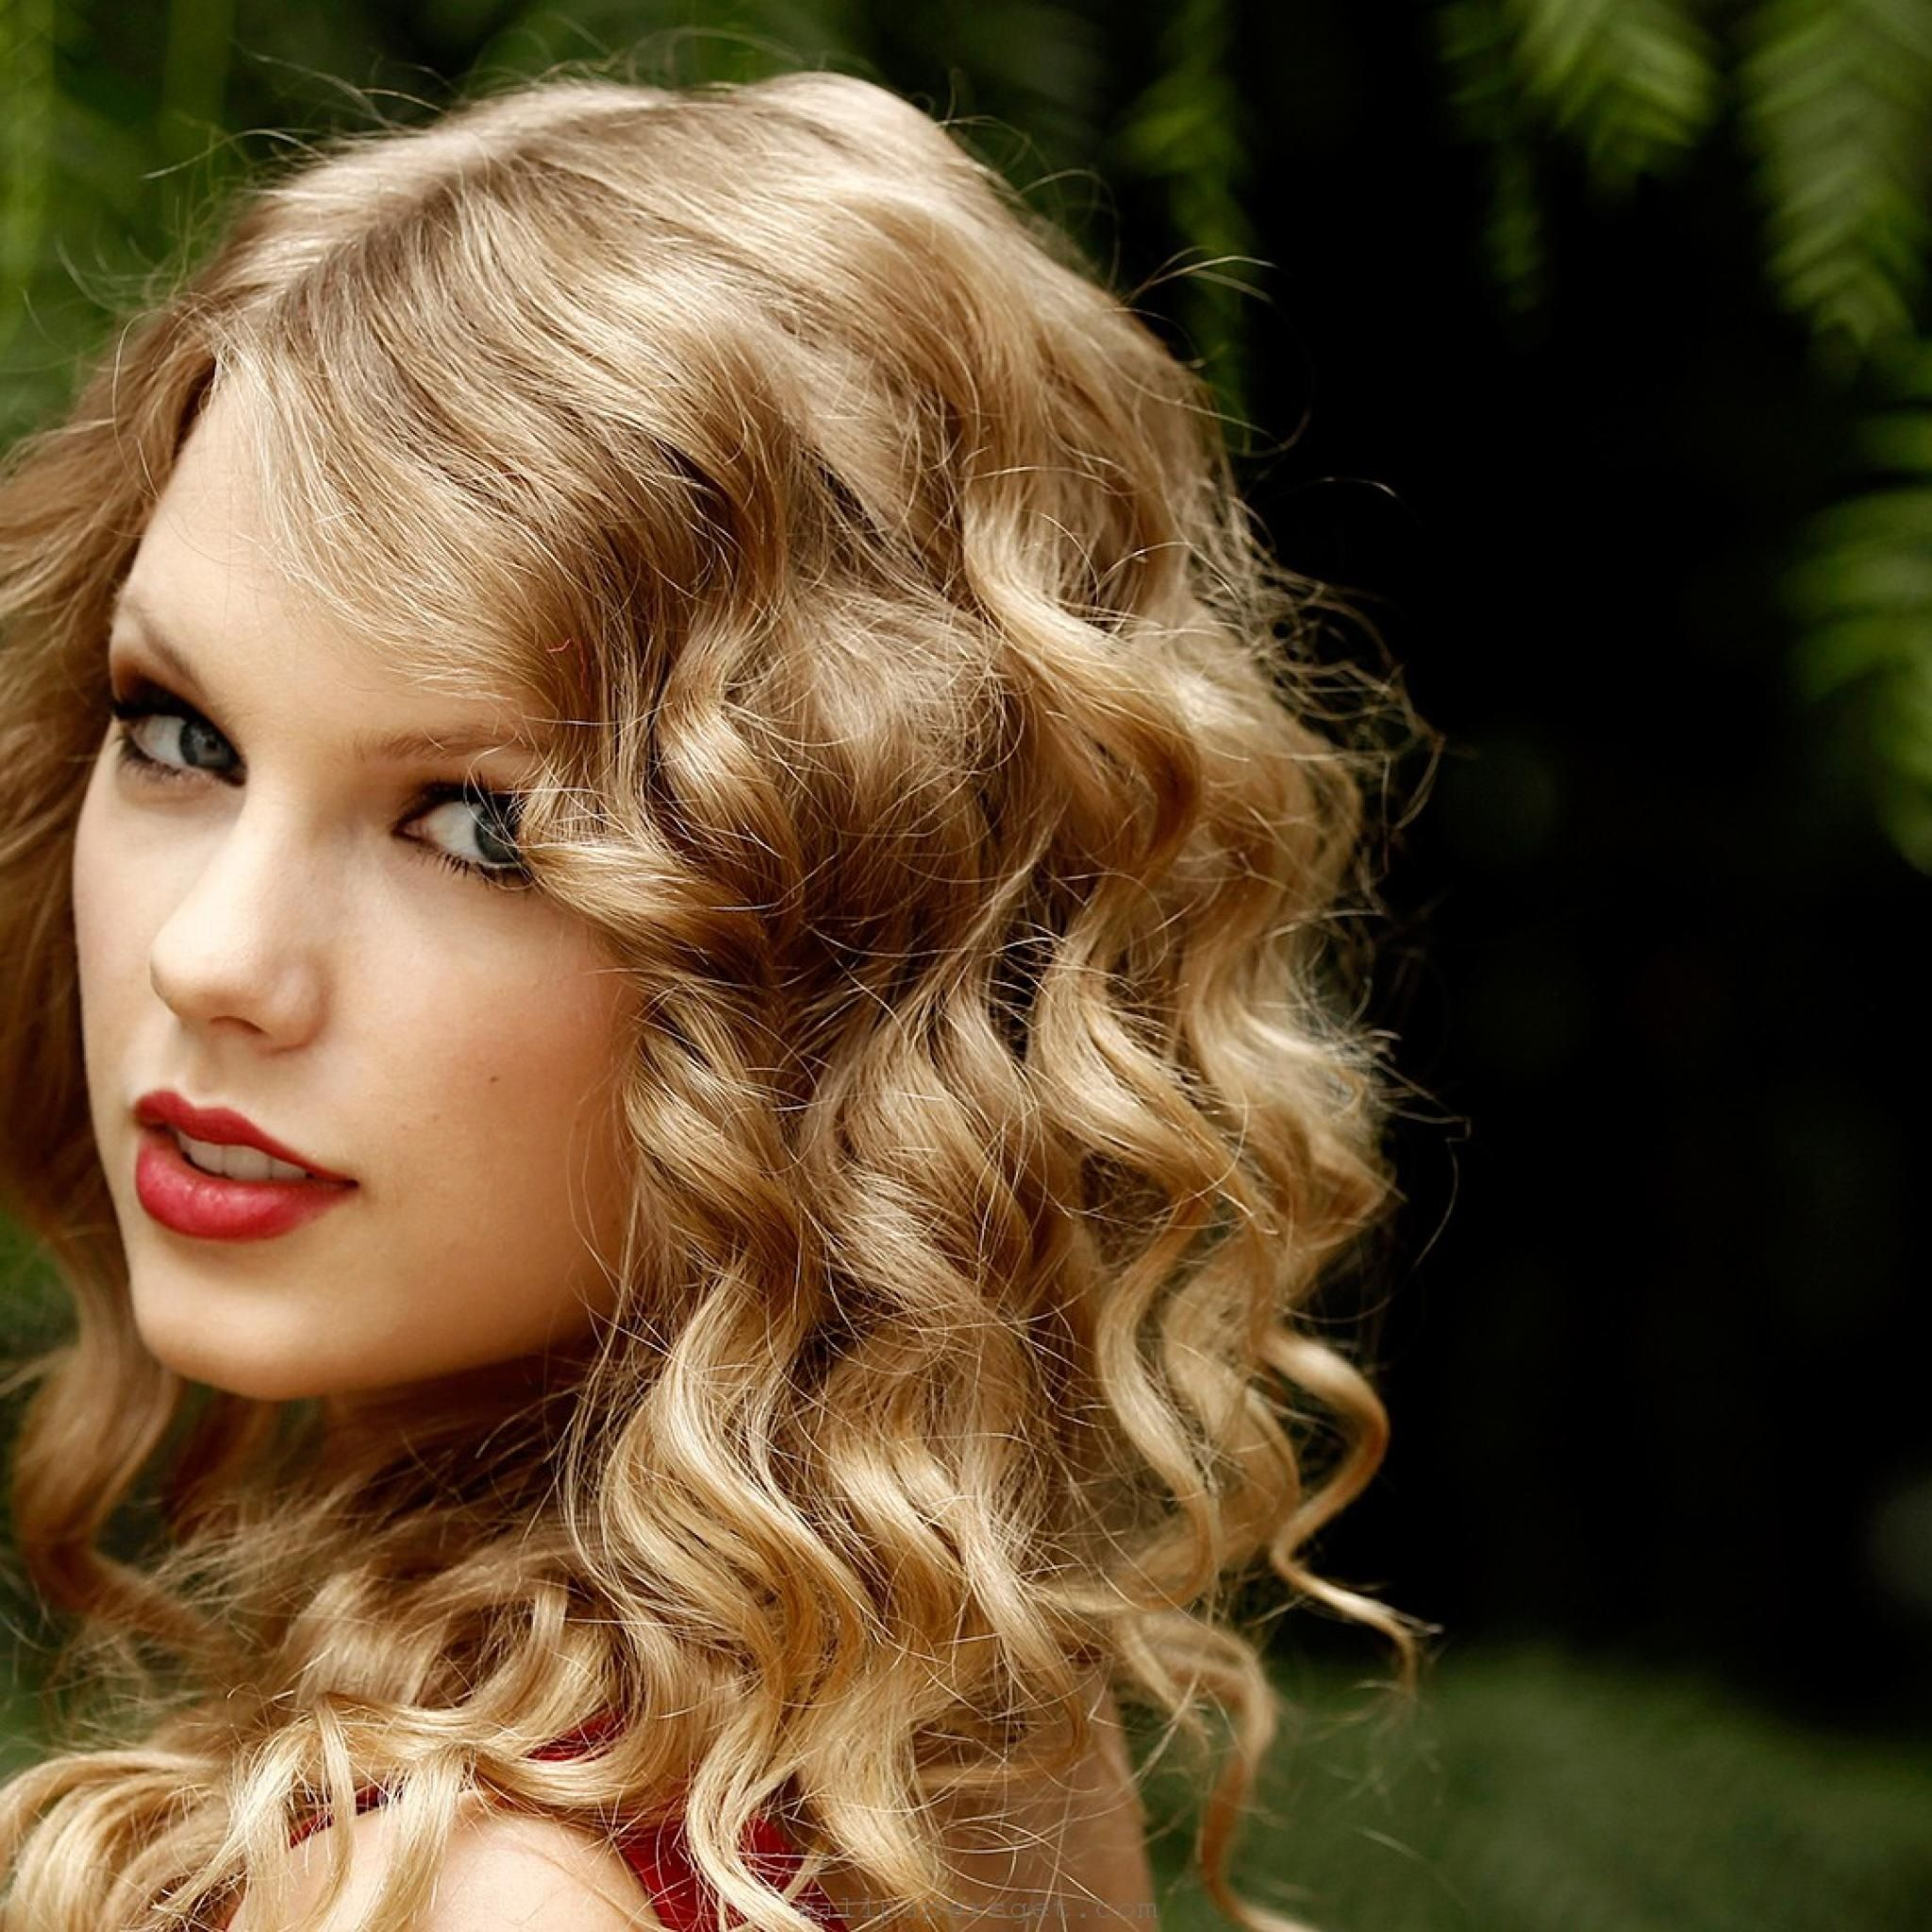 Taylor Swift Is A Remodel To Teenage Girls With Relationship